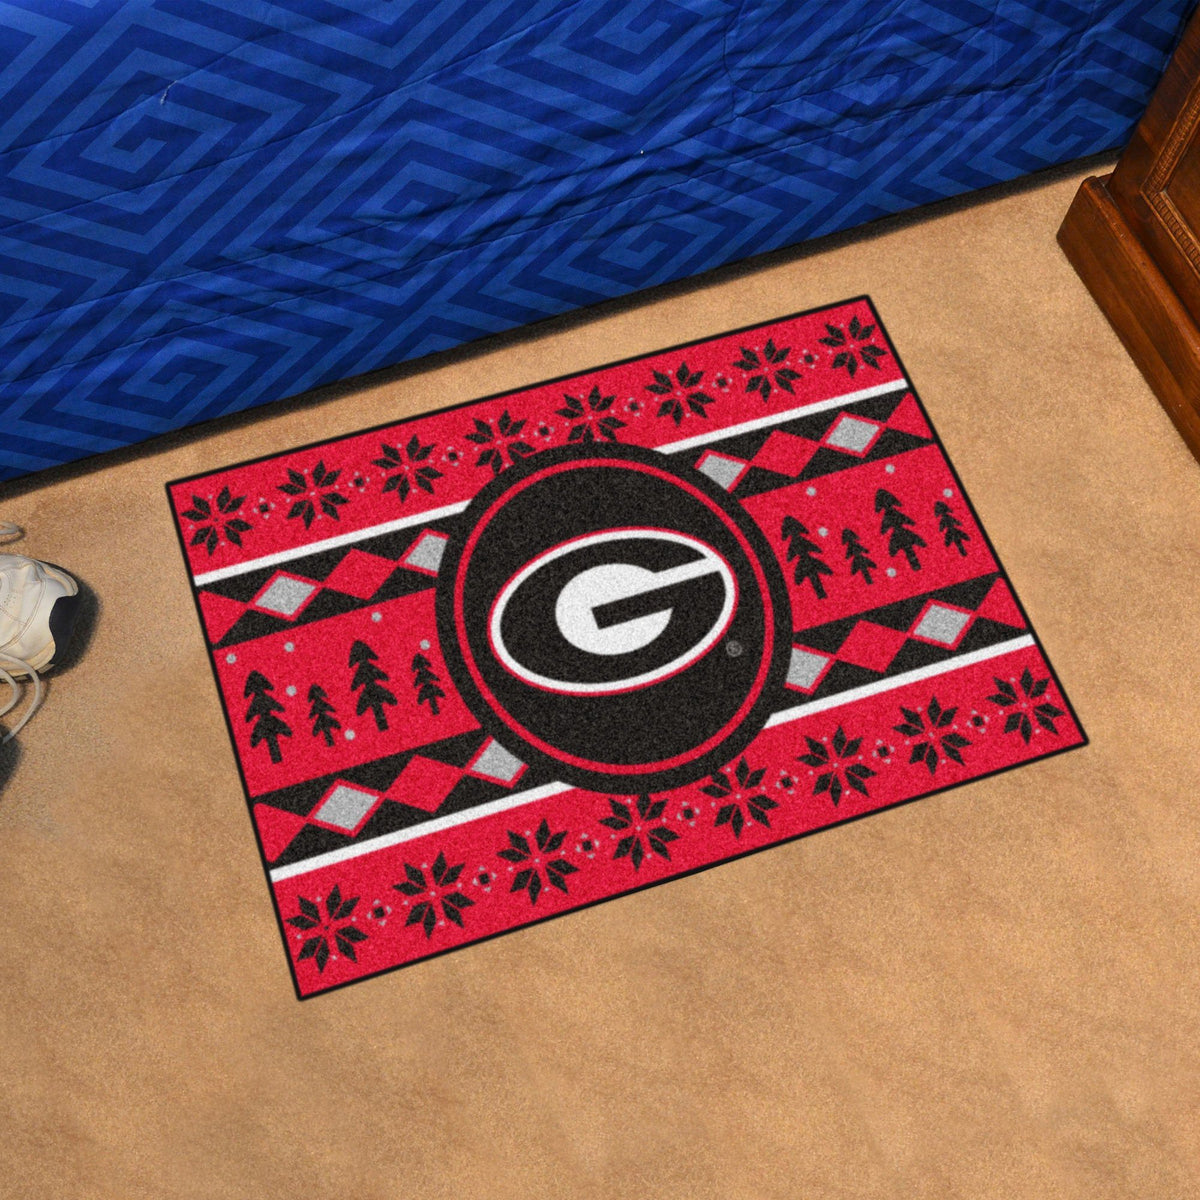 Collegiate - Holiday Sweater Starter Mat Collegiate Mats, Rectangular Mats, Holiday Sweater Starter Mat, Collegiate, Home Fan Mats Georgia